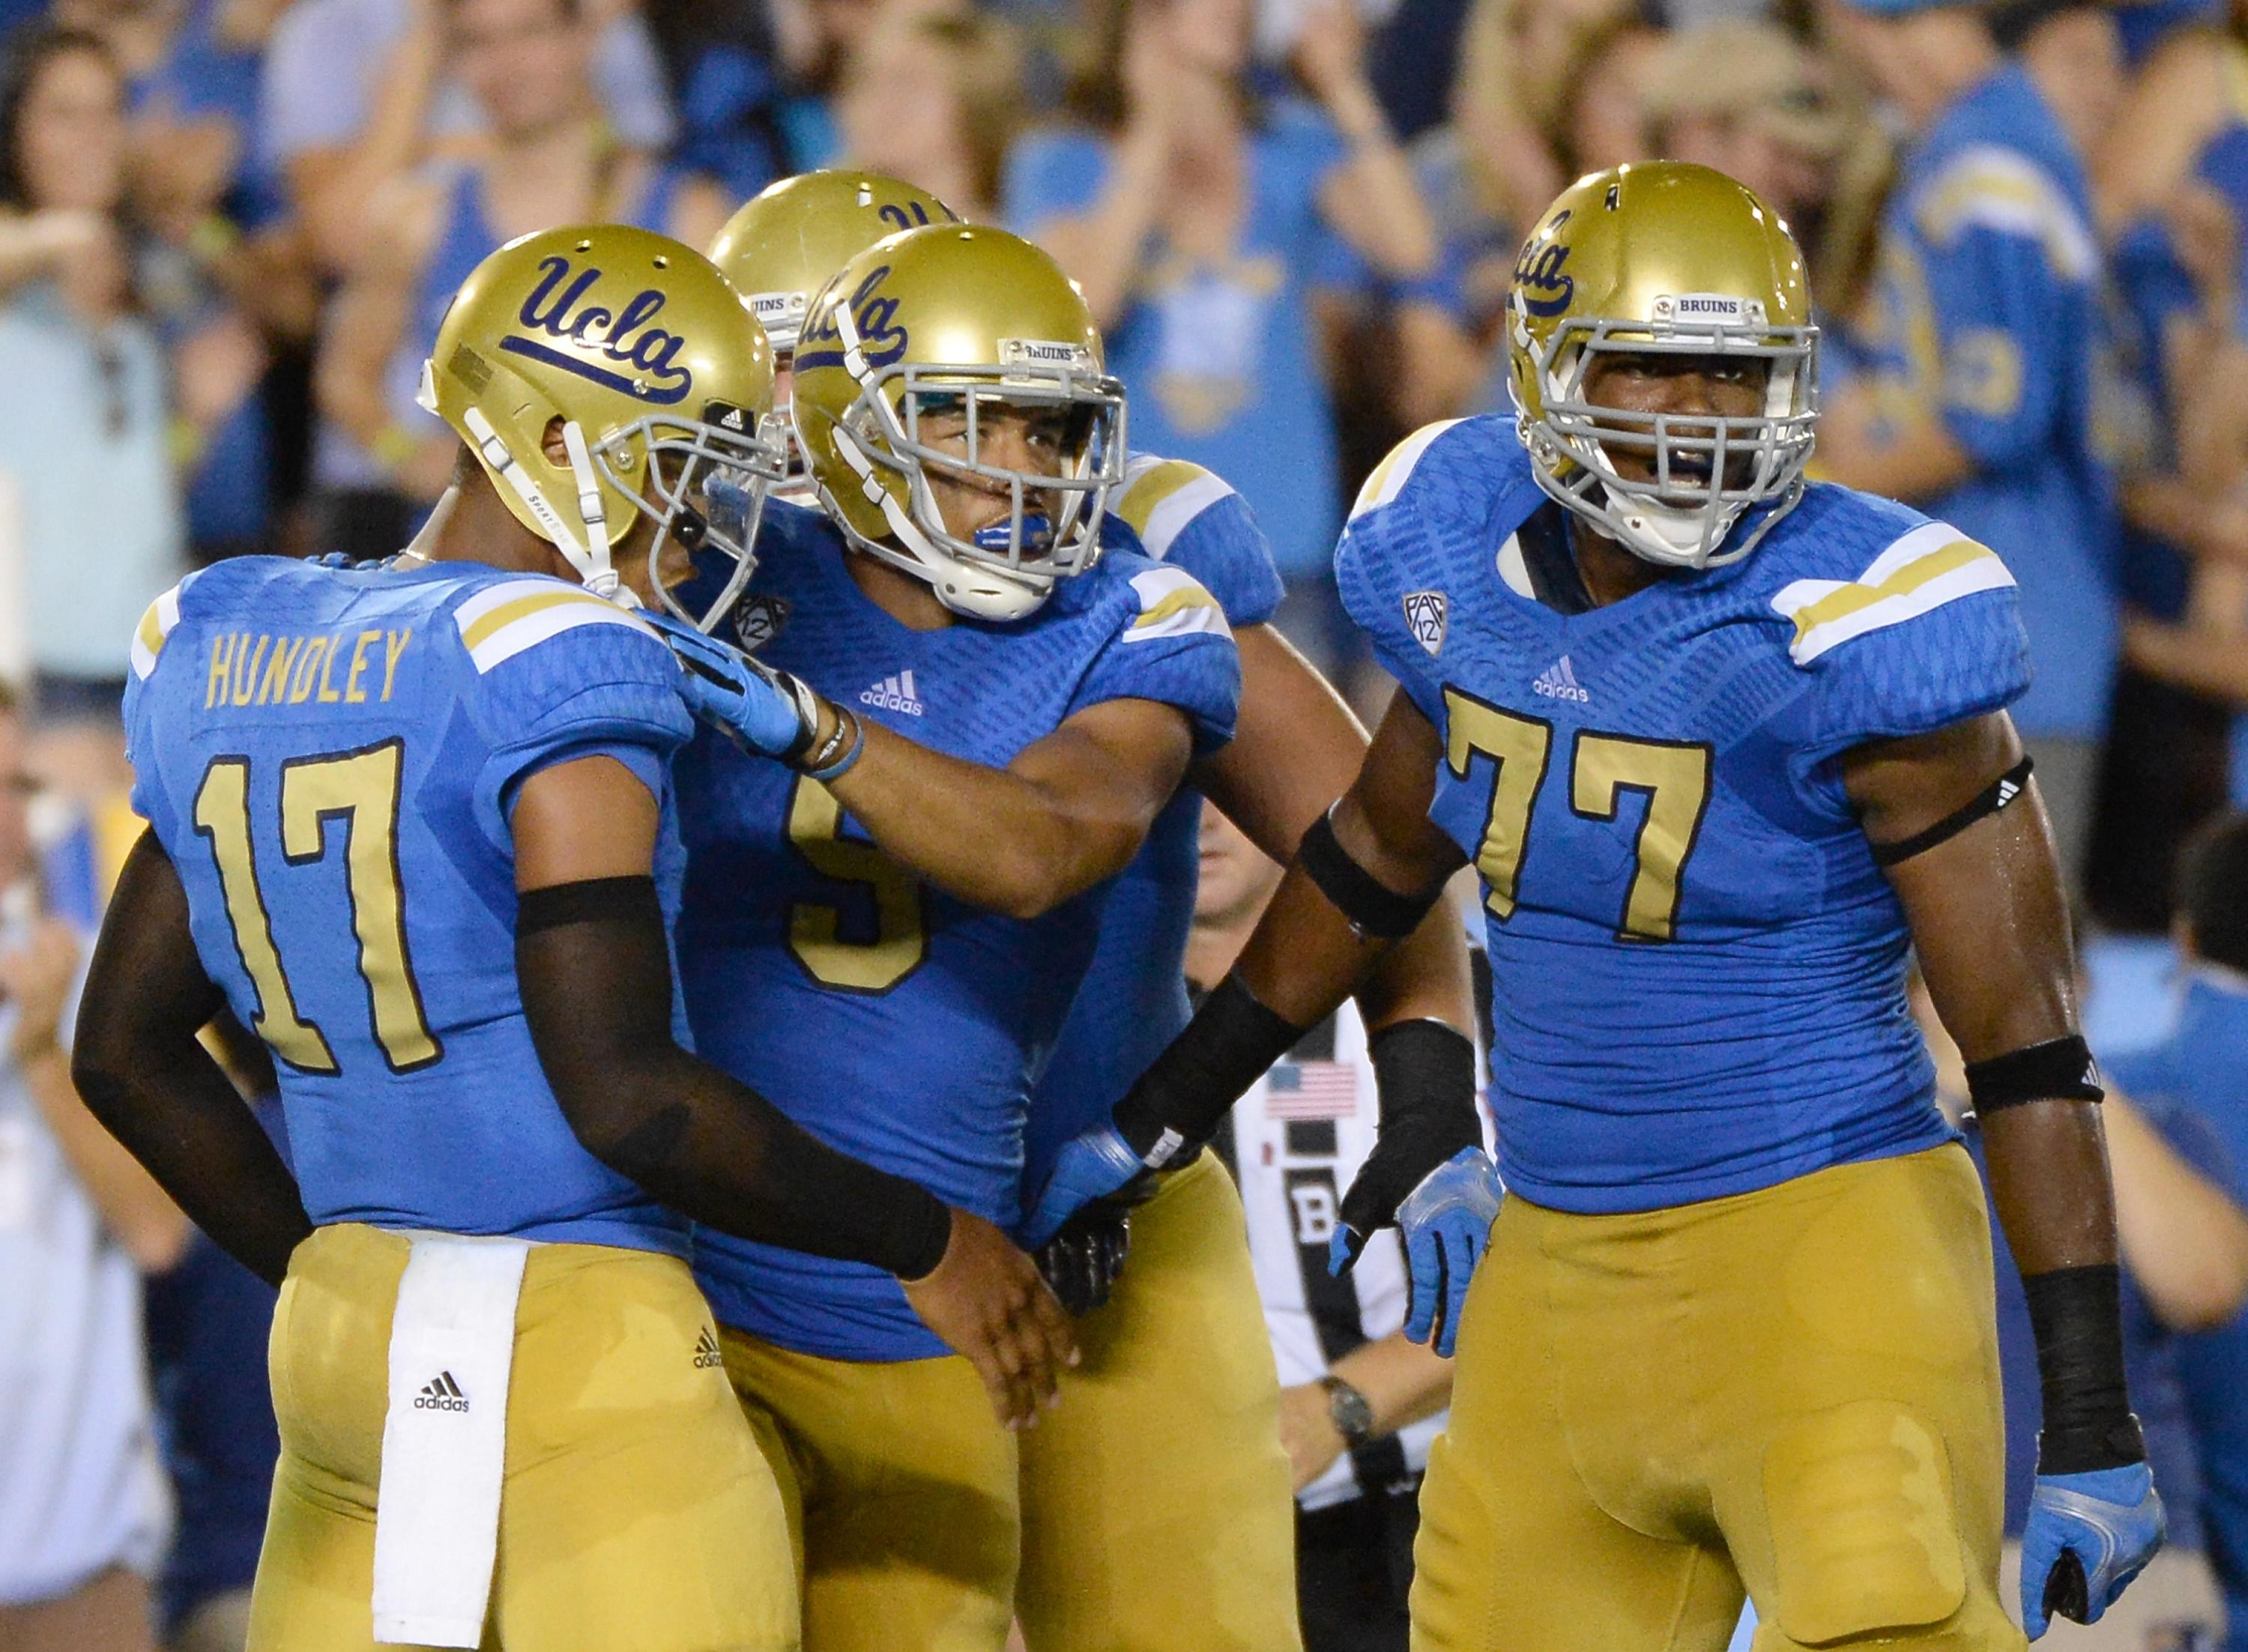 UCLA offensive lineman Torian White is no longer with the team